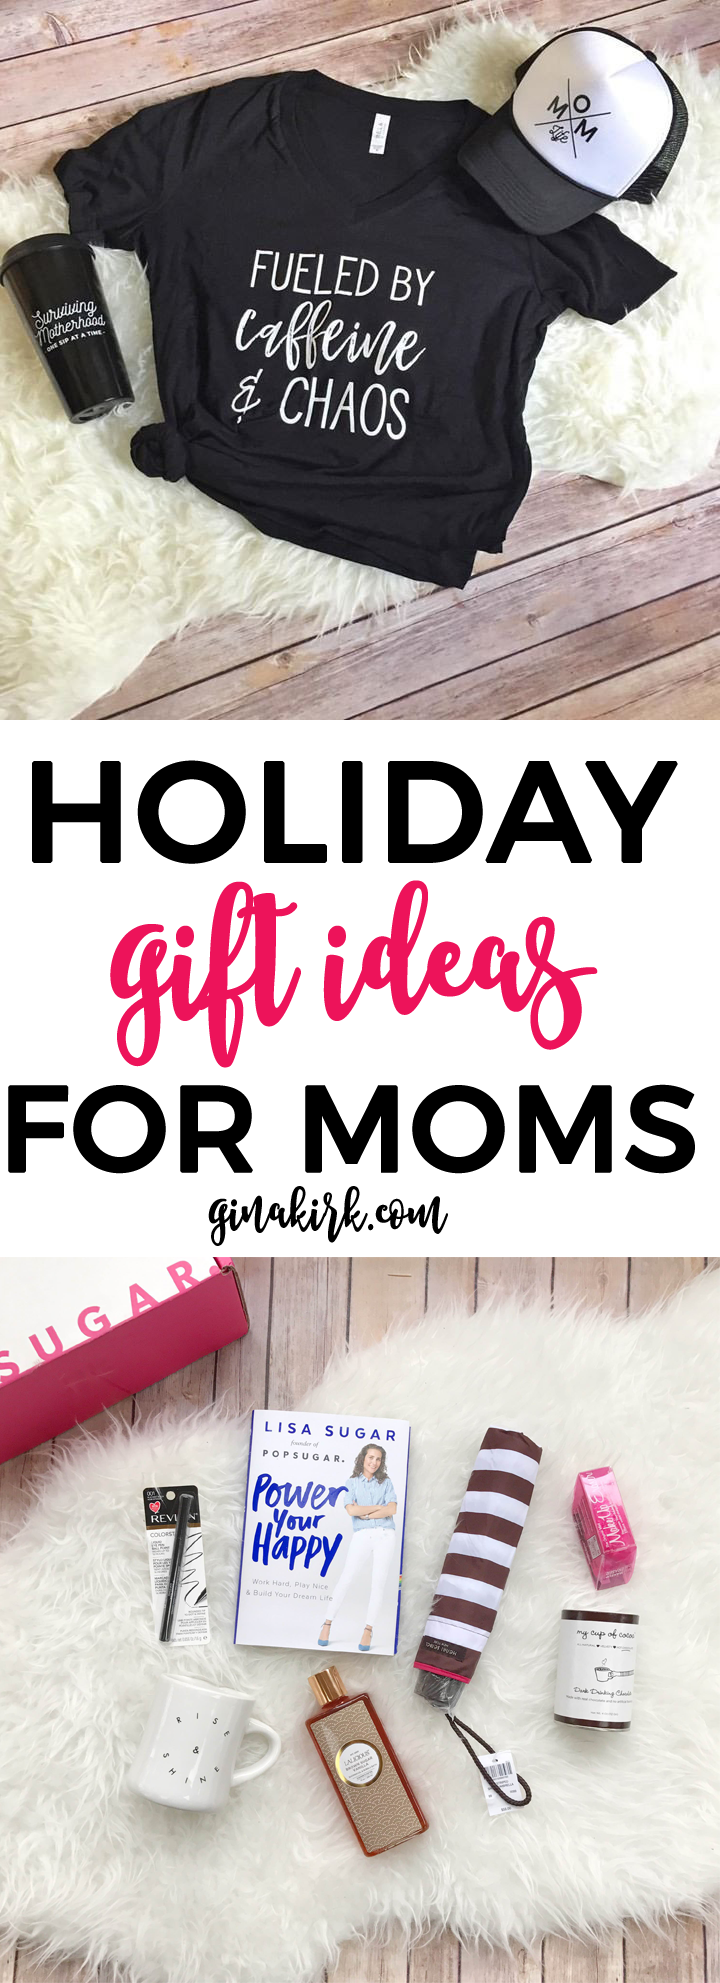 Holiday Gift Ideas for Moms | What to get moms for christmas | Christmas gift ideas for new moms | GinaKirk.com @ginaekirk